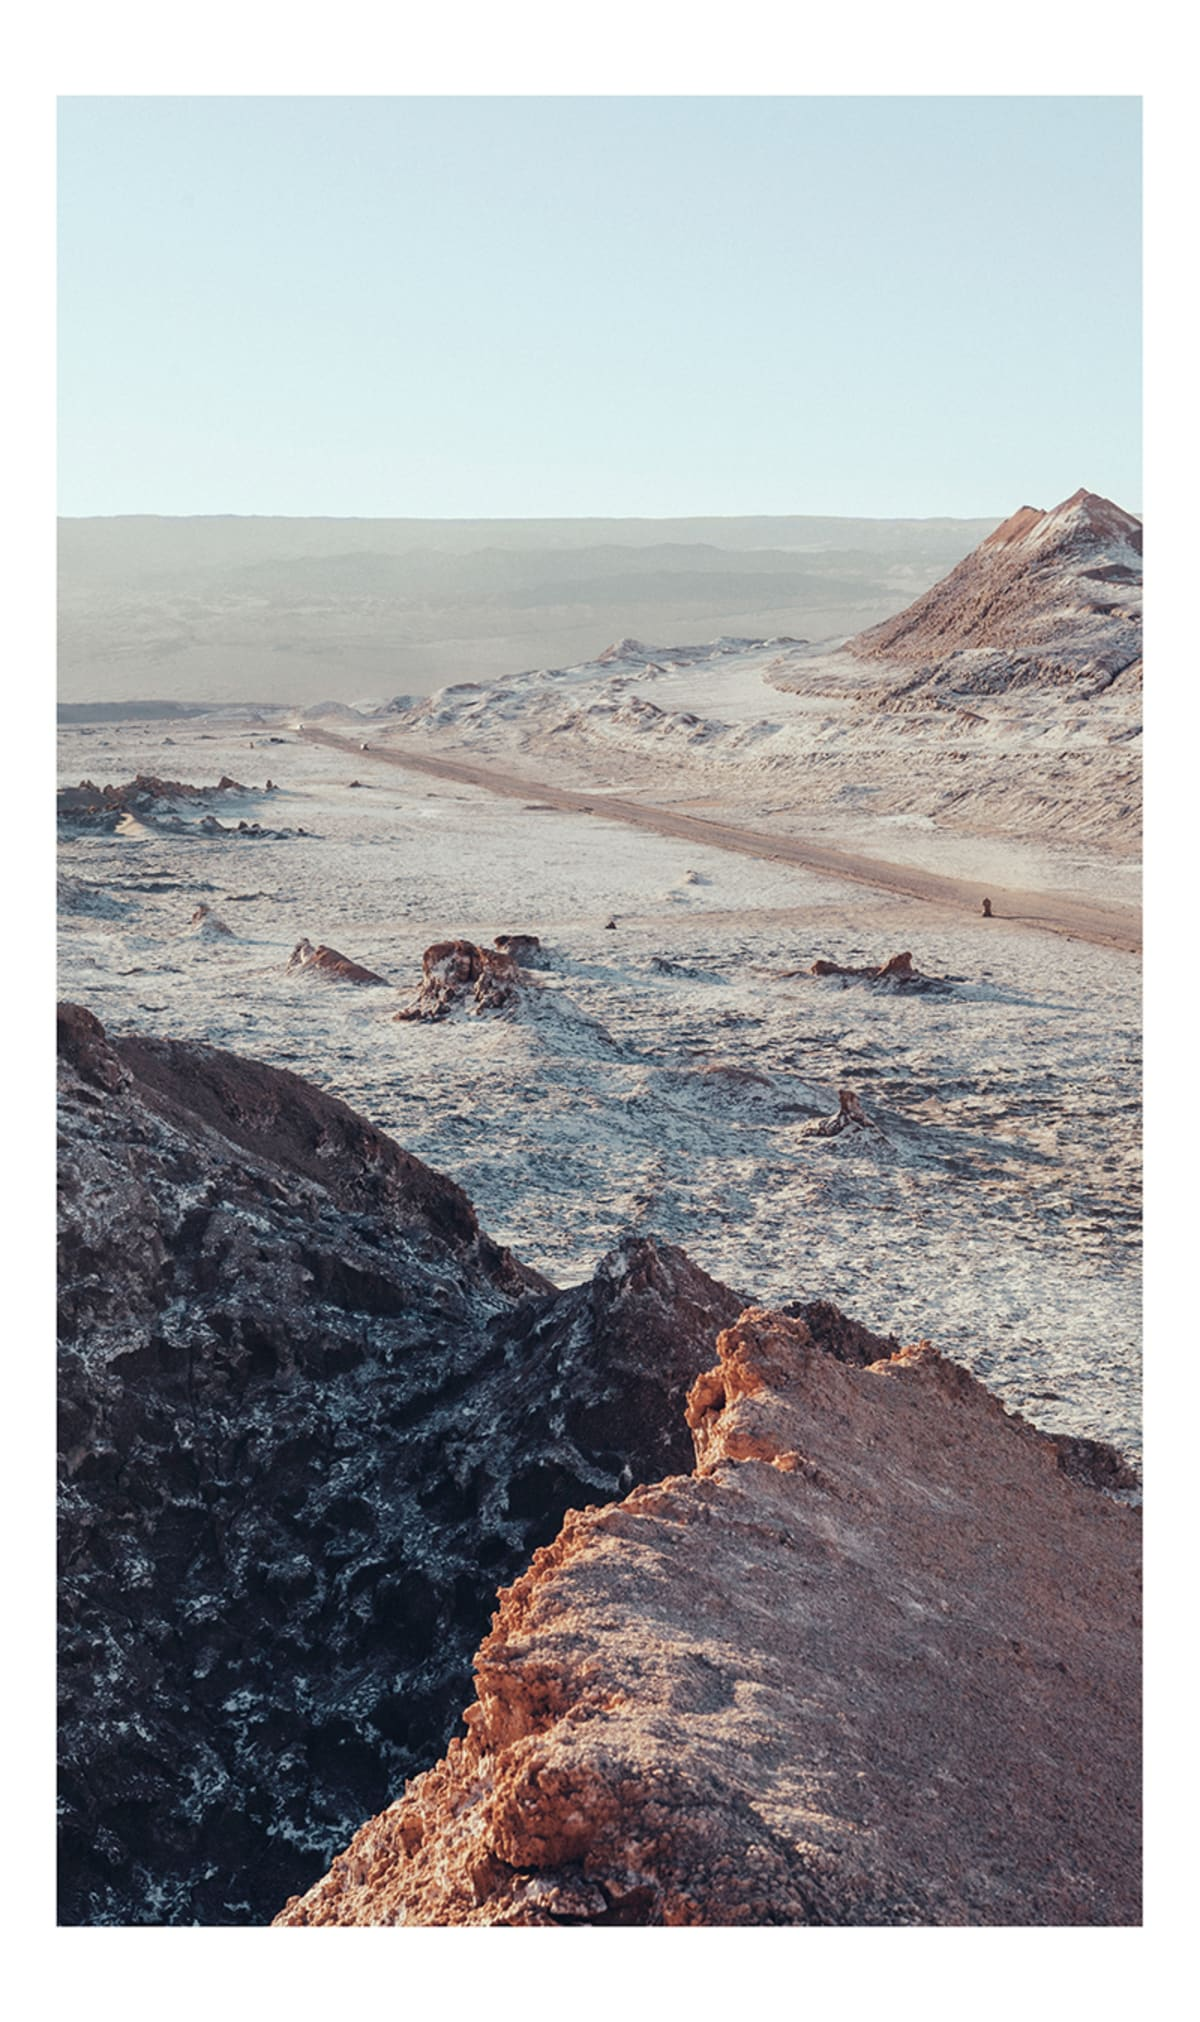 A landscape from Debbie Gallulo